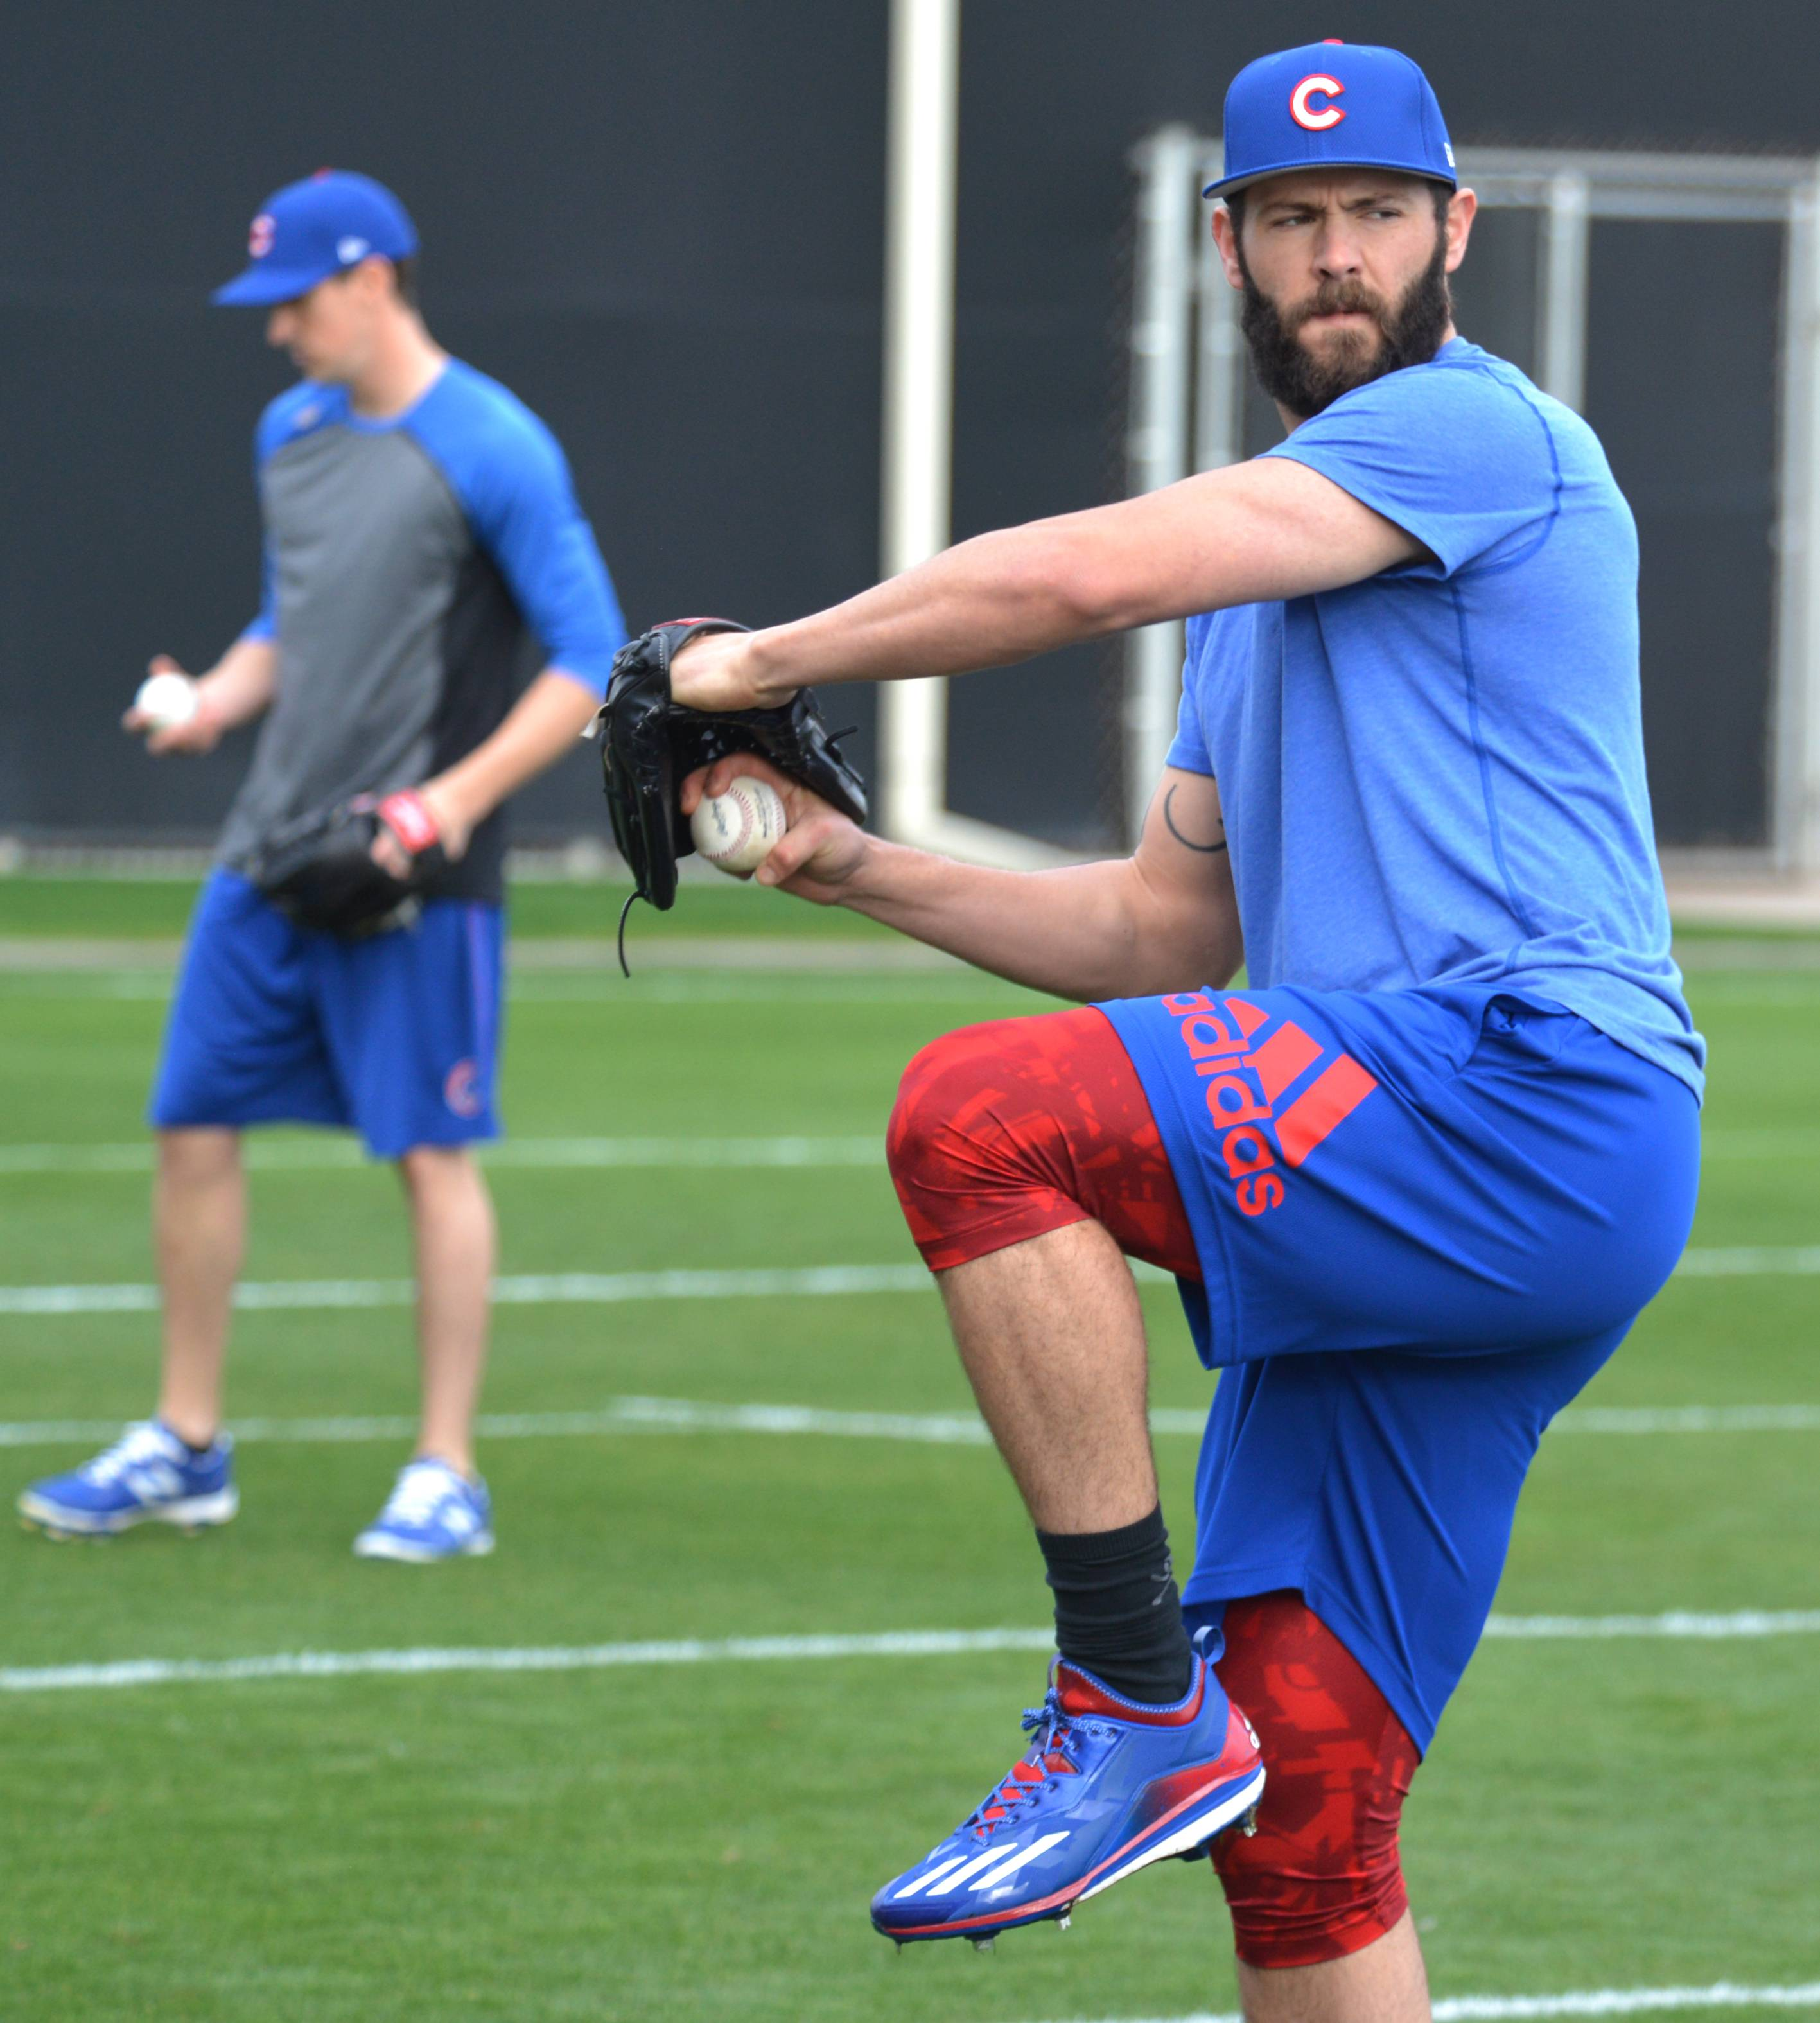 Jake Arrieta got to work early as Cubs pitchers and catchers began report to training camp on Monday in Mesa, Ariz.